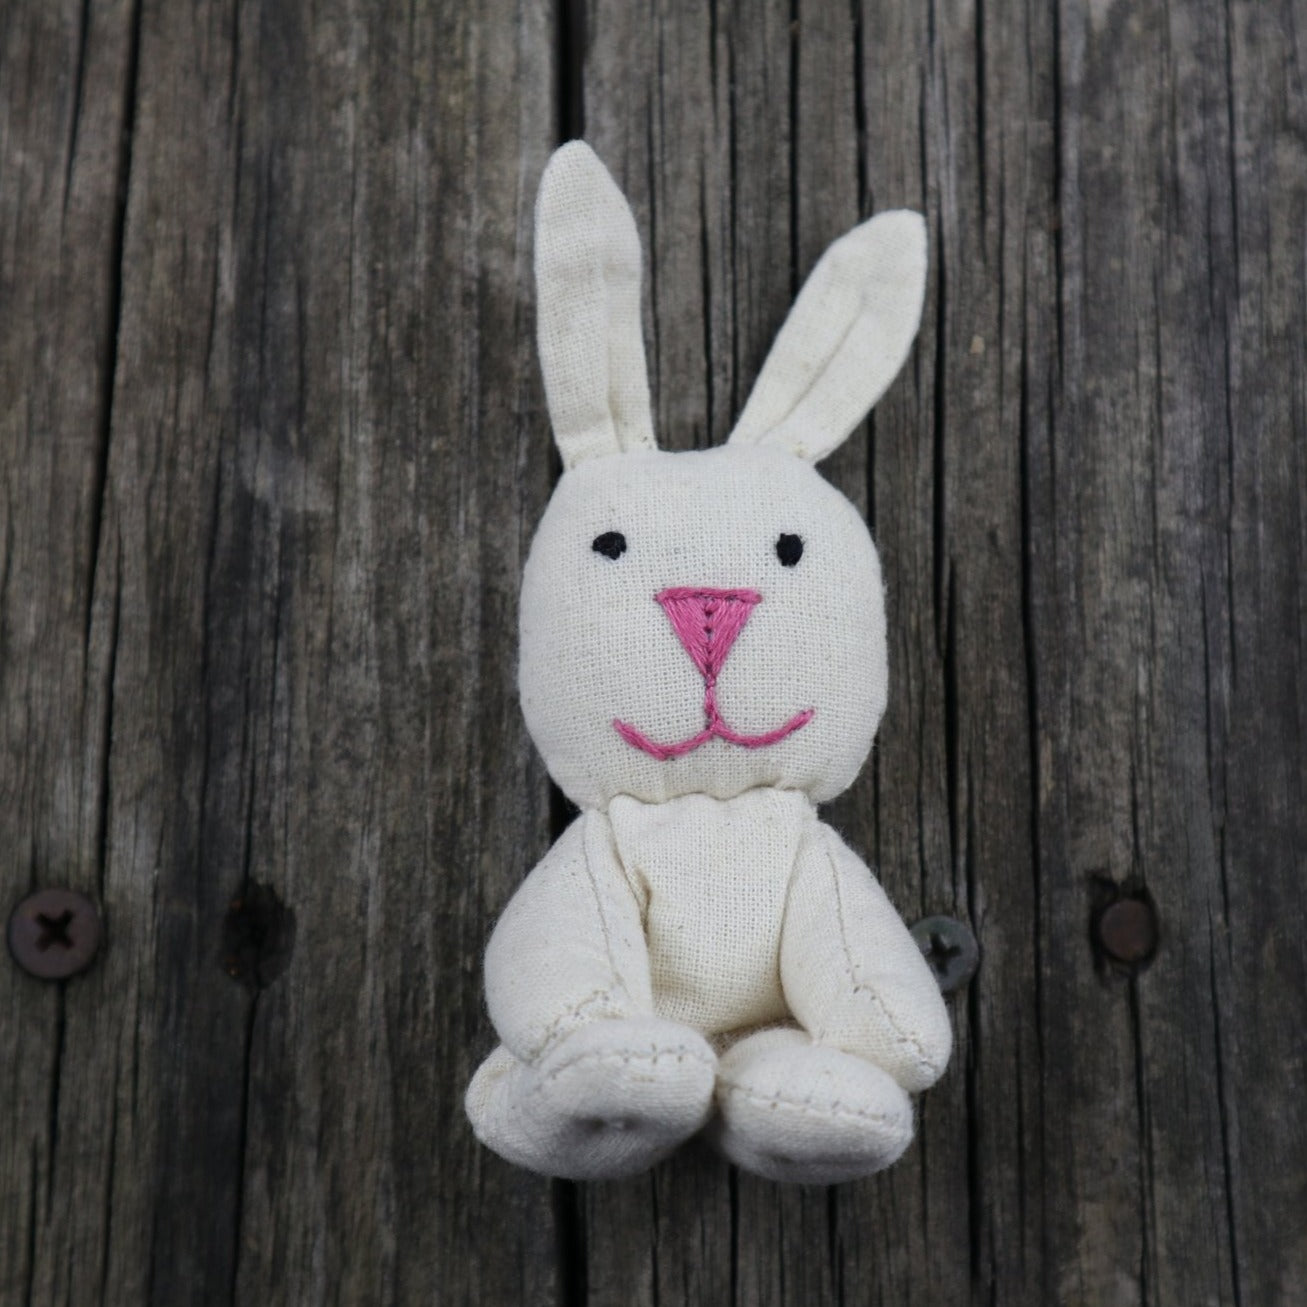 Fair Trade Ethical Small Cotton Sitting Toy Rabbit